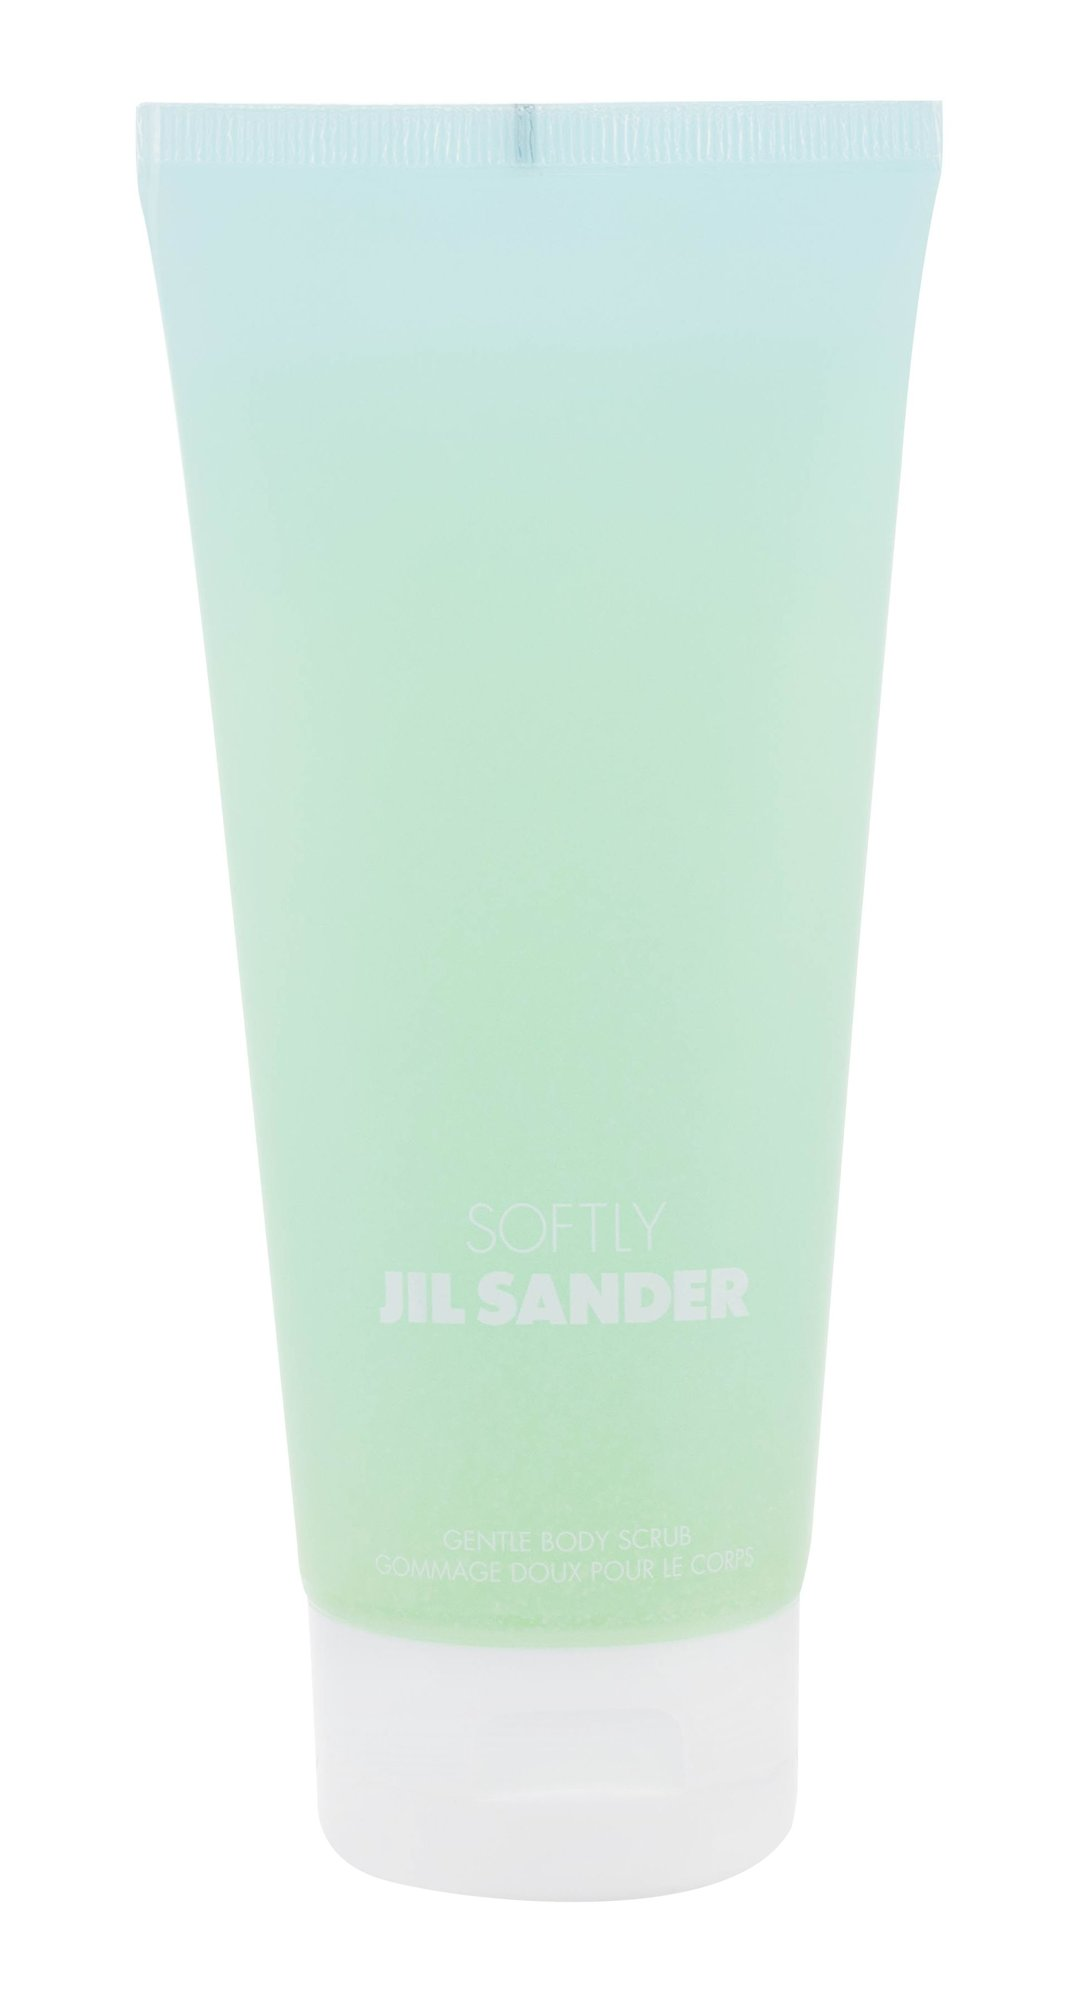 Jil Sander Softly Body Peeling 200ml